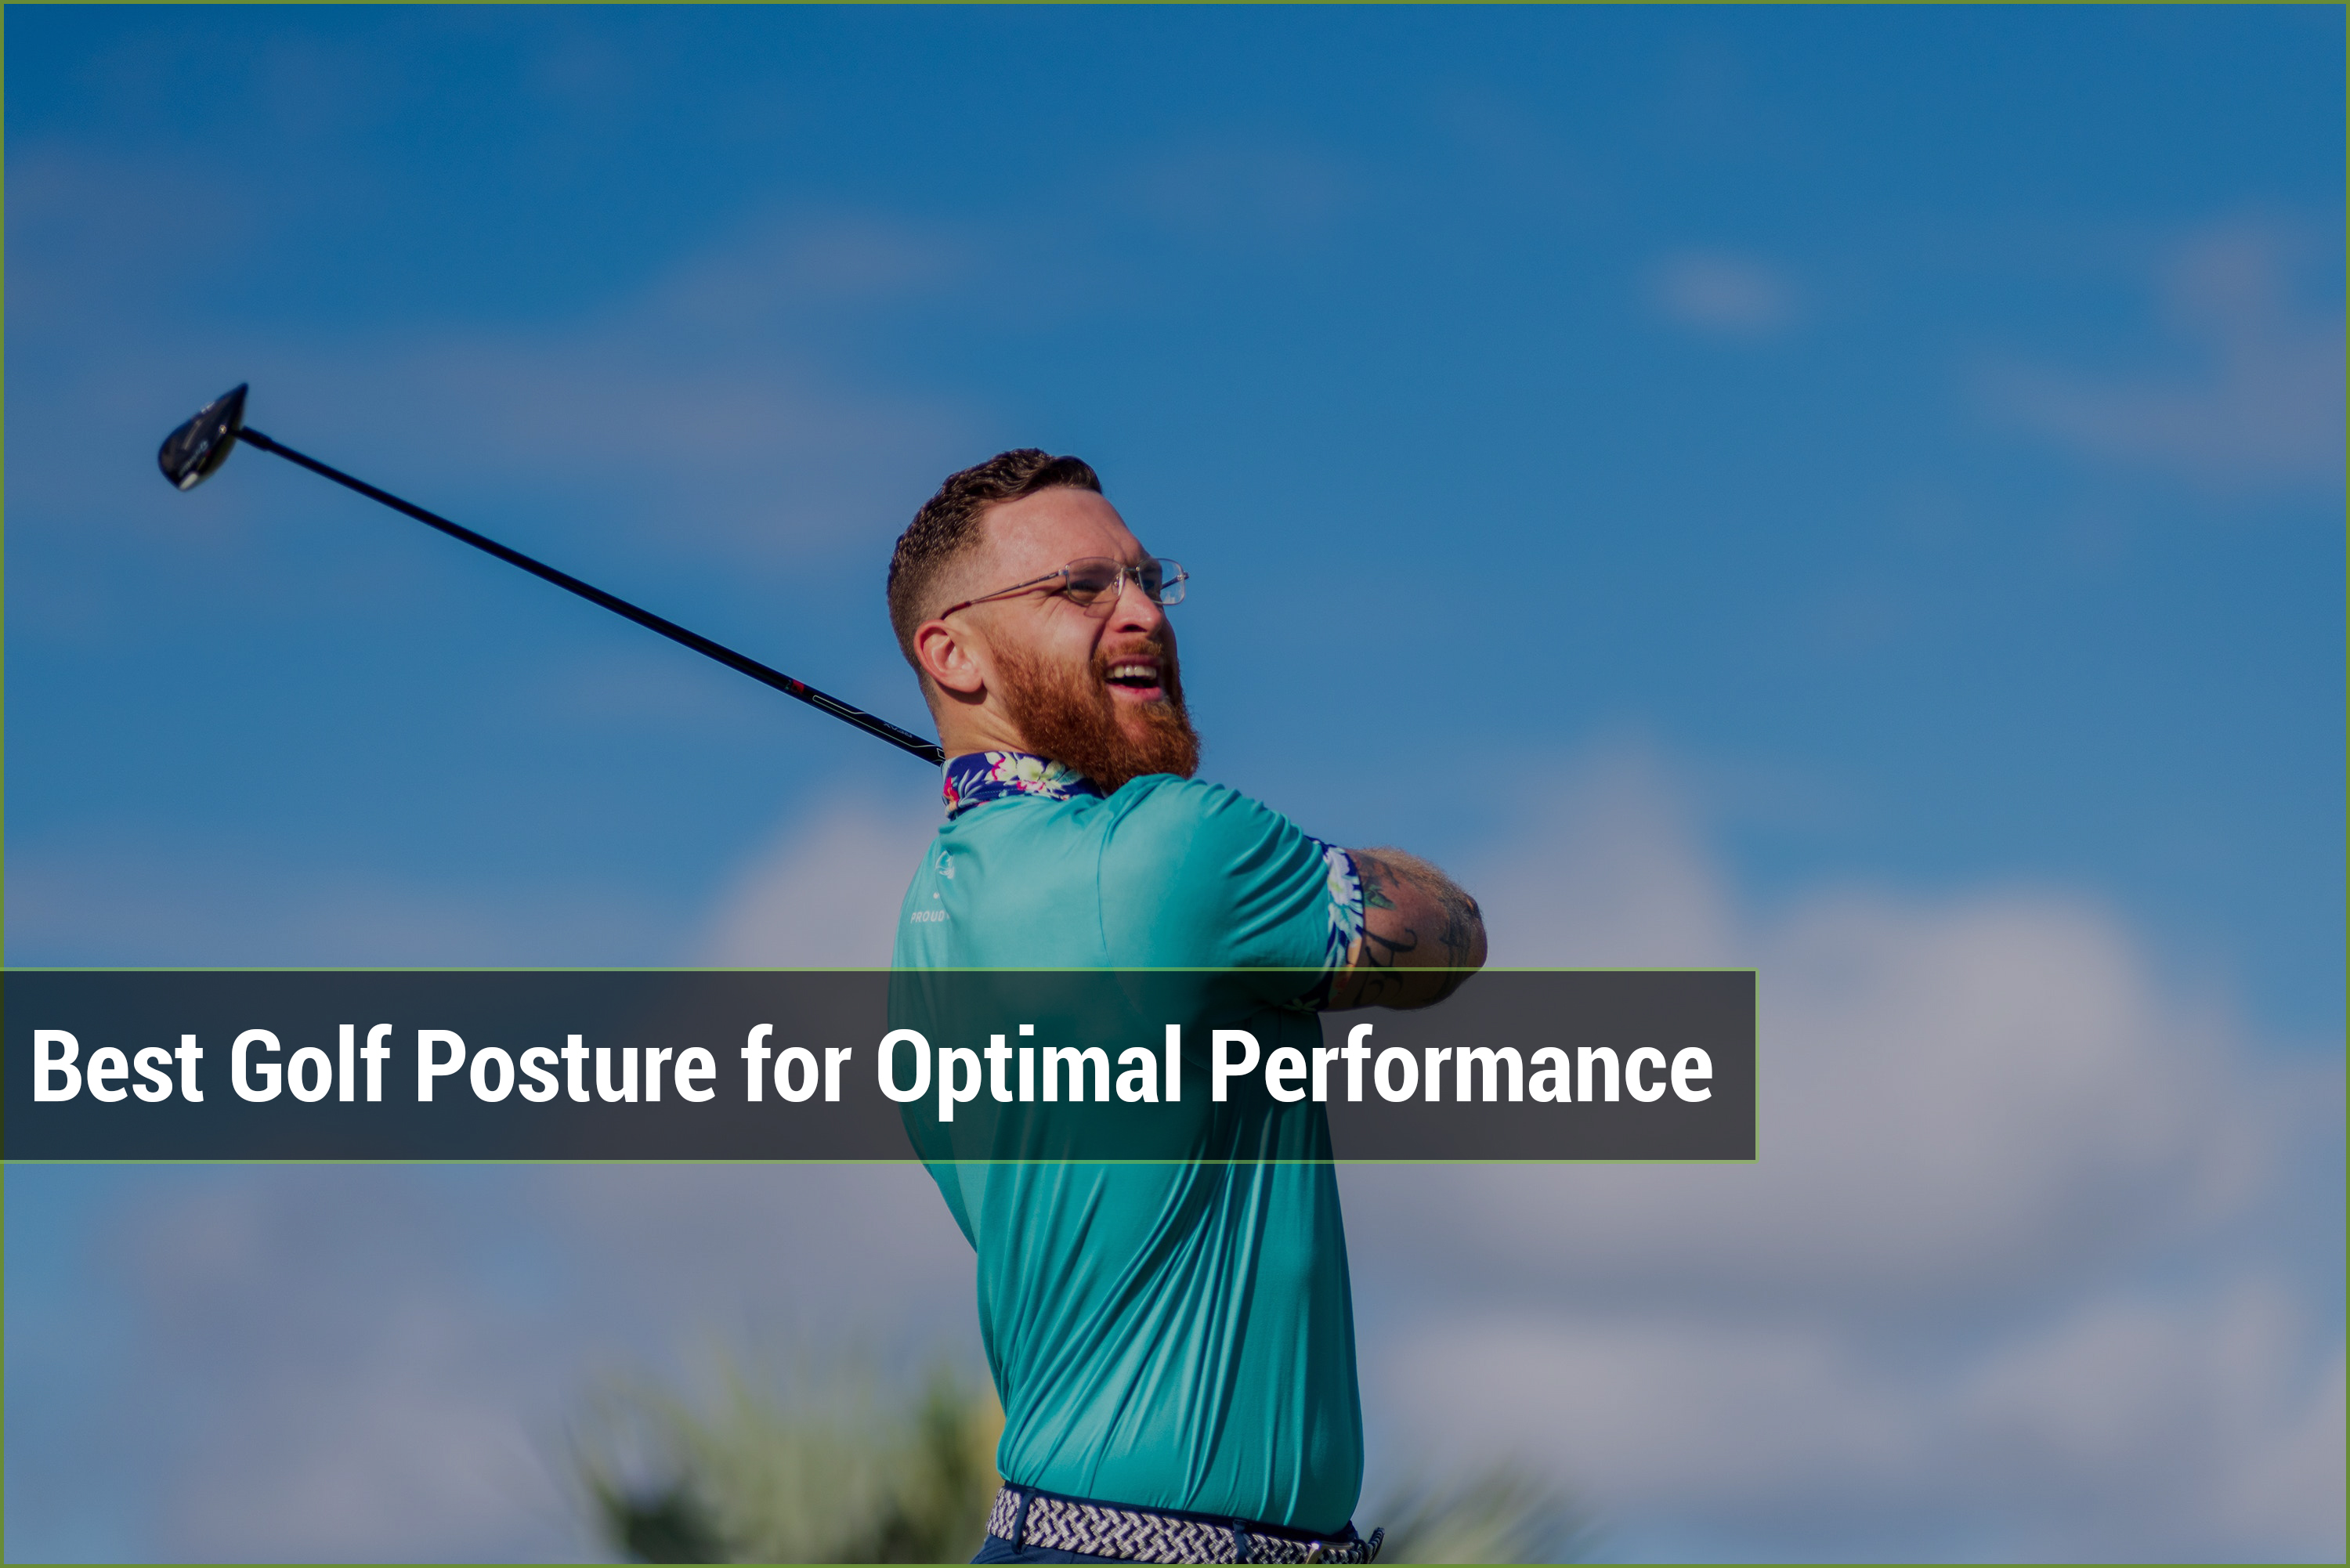 Best Golf Posture for Optimal Performance